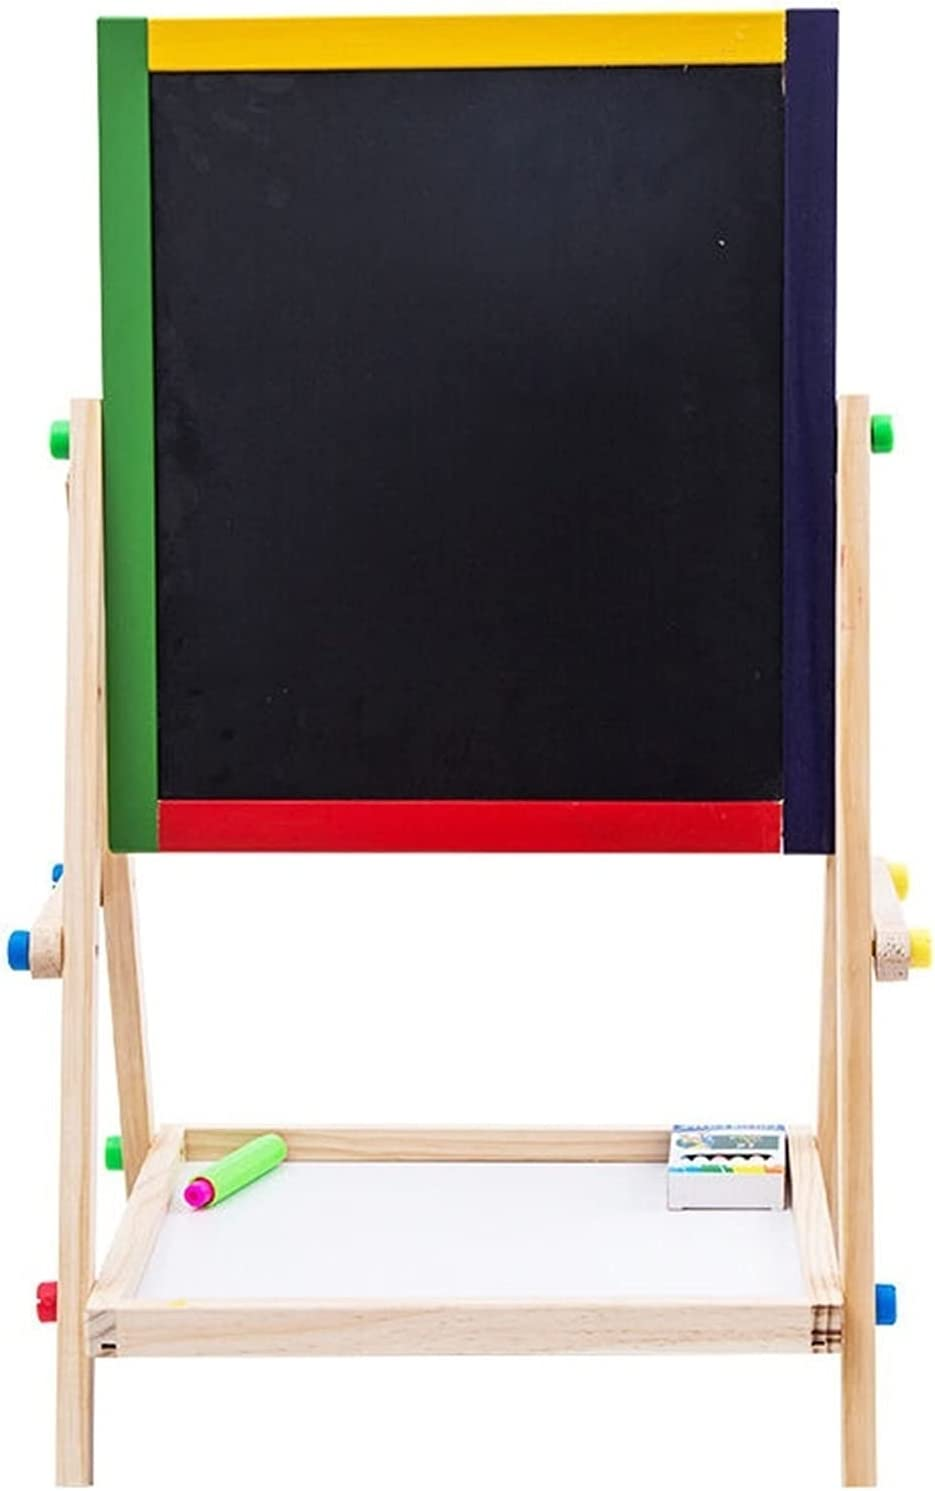 LICHUAN Board Solid Luxury goods Wood Kids Double Easel Room Sided New arrival Toy